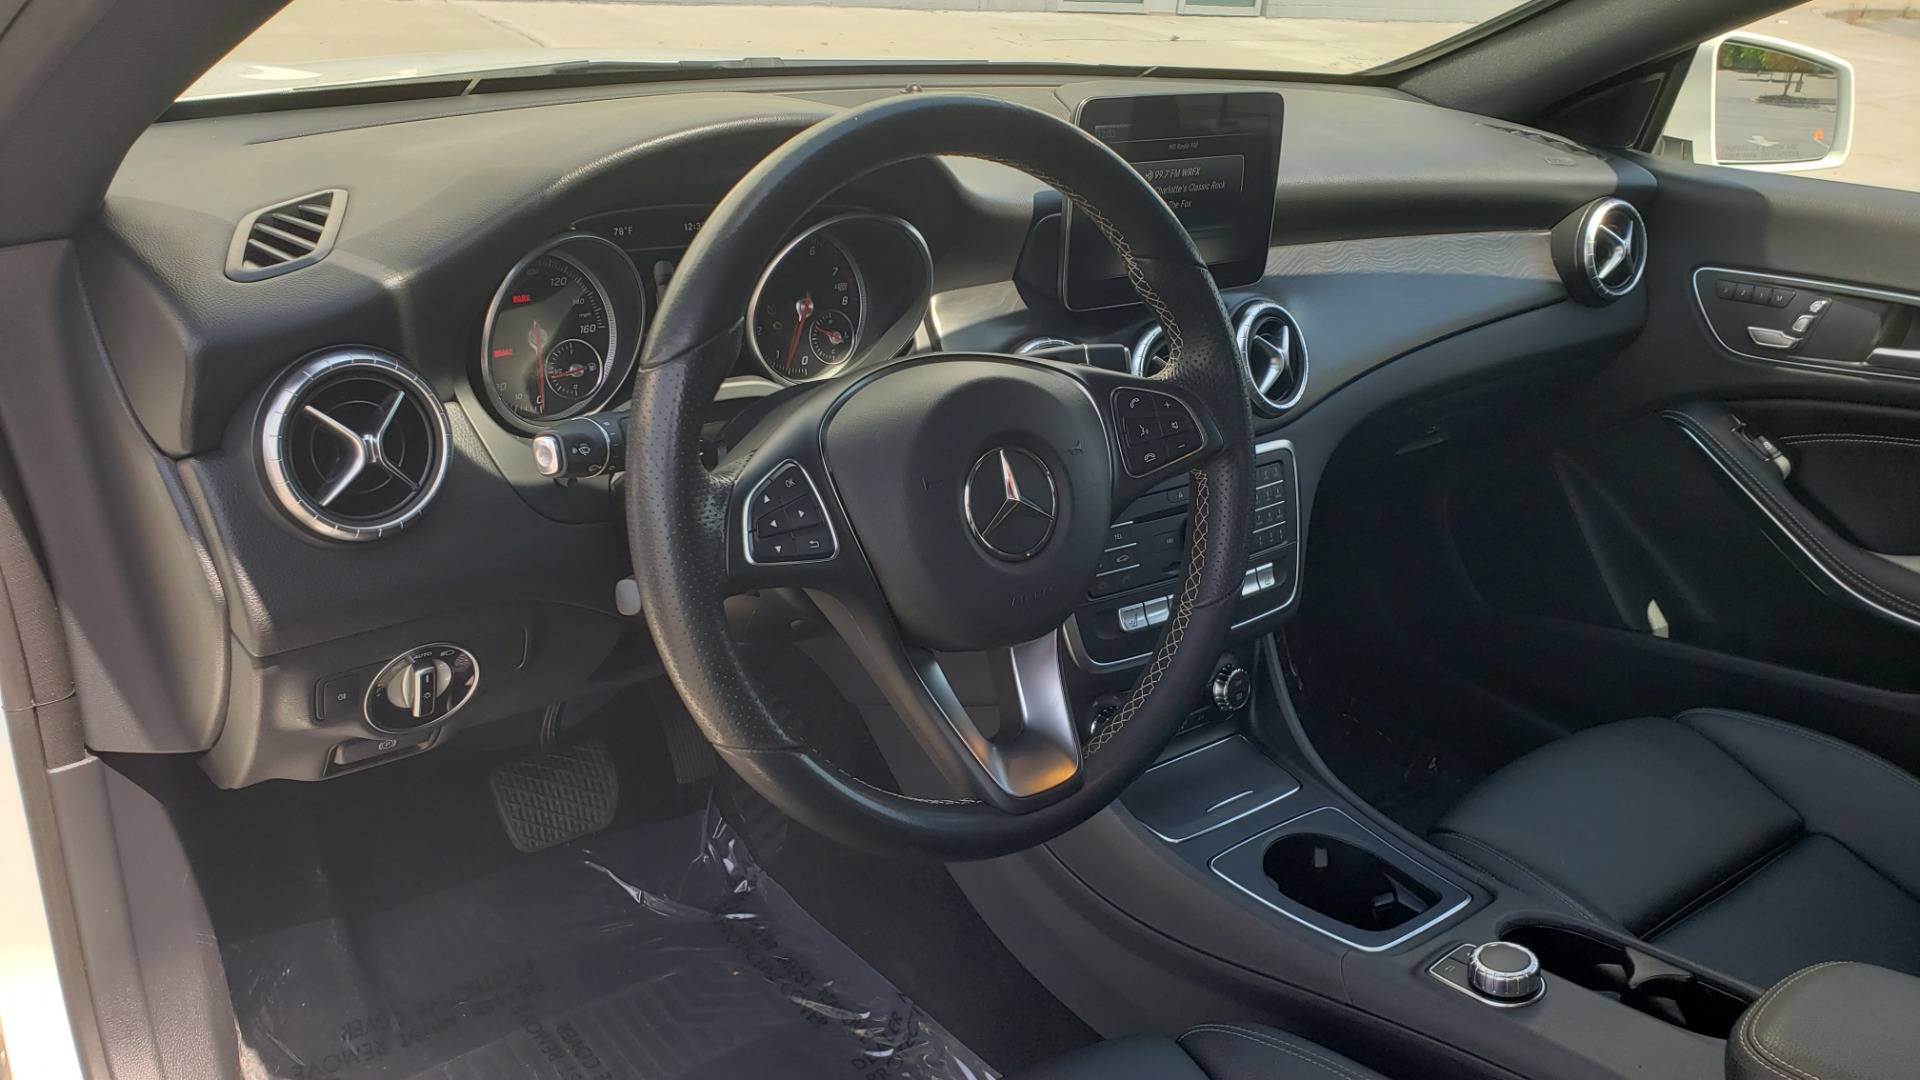 Used 2018 Mercedes-Benz CLA 250 4MATIC PREMIUM / PANO-ROOF / CONV PKG / APPLE / REARVIEW for sale $25,395 at Formula Imports in Charlotte NC 28227 36